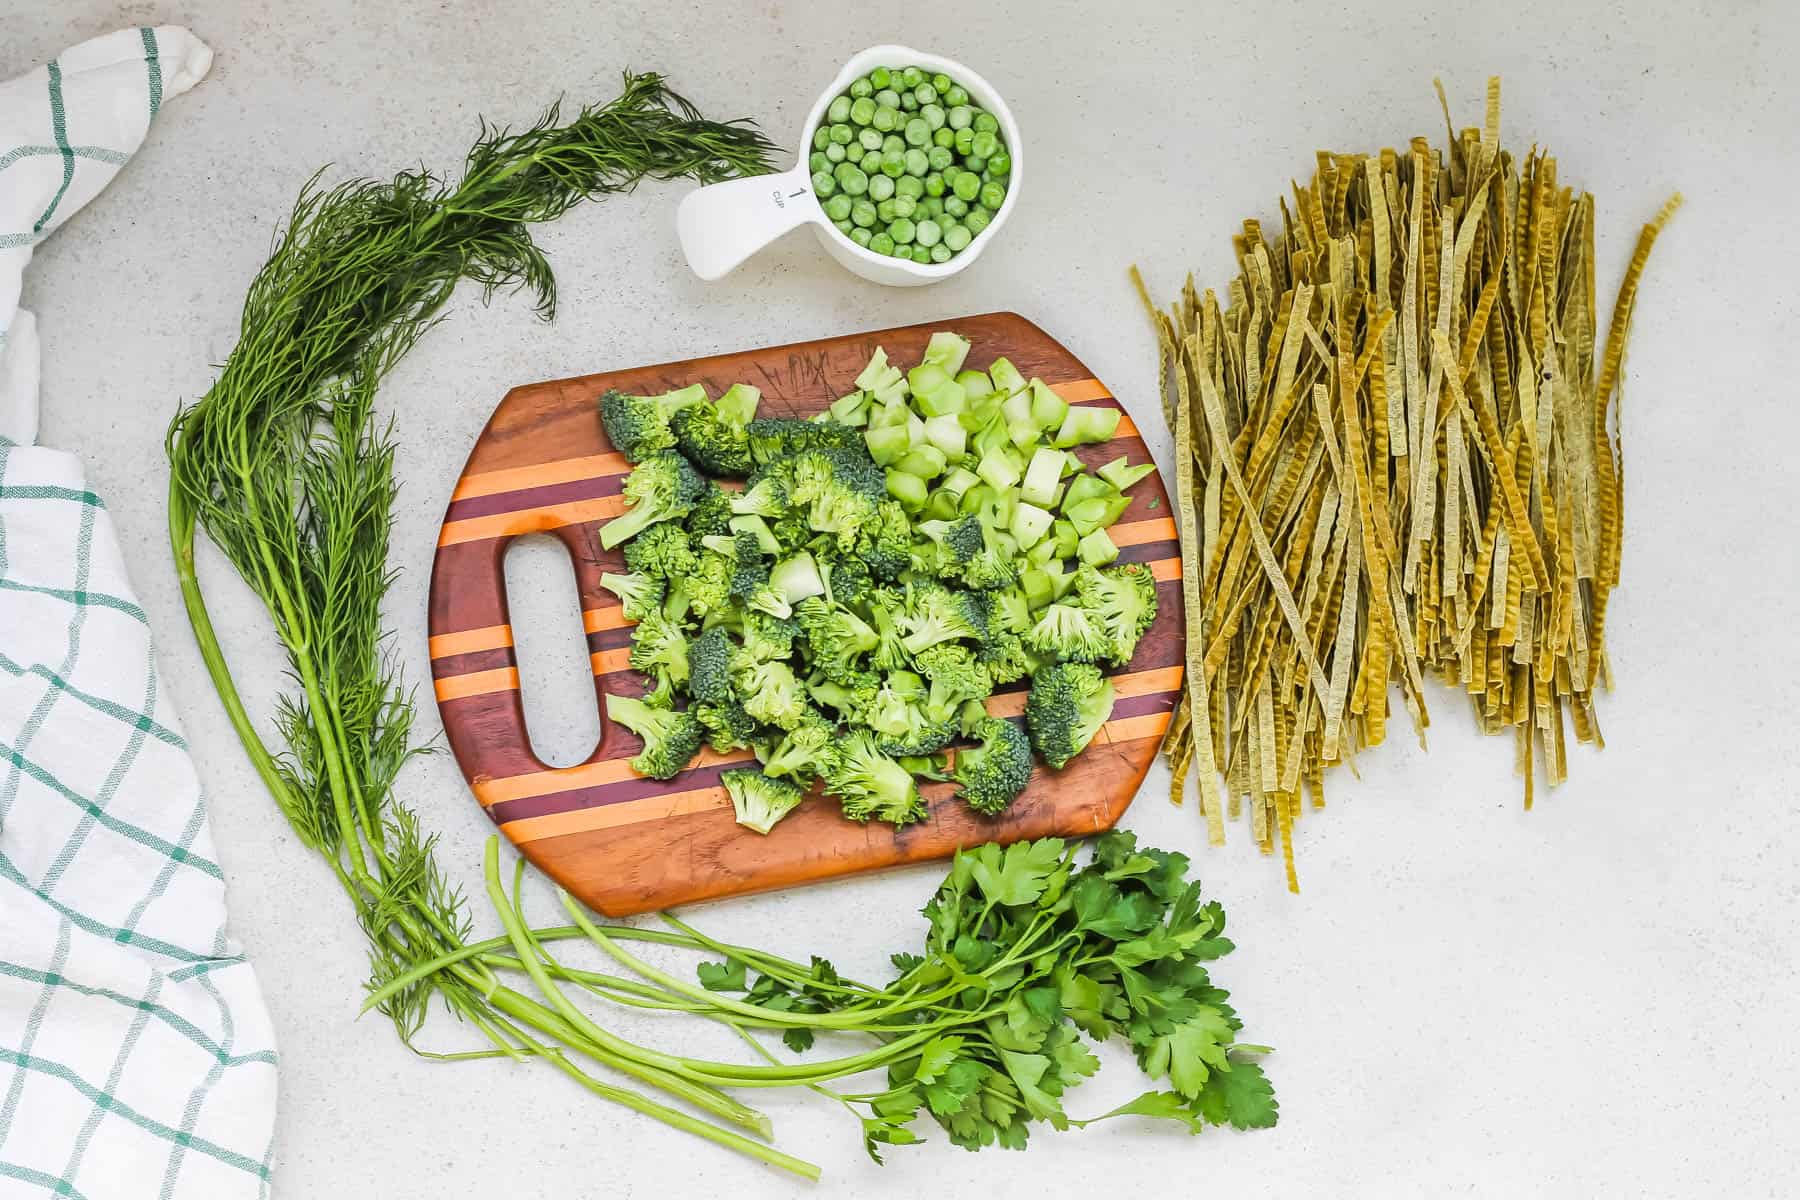 chopped broccoli, frozen peas, fresh herbs, and edamame noodles on a wooden cutting board